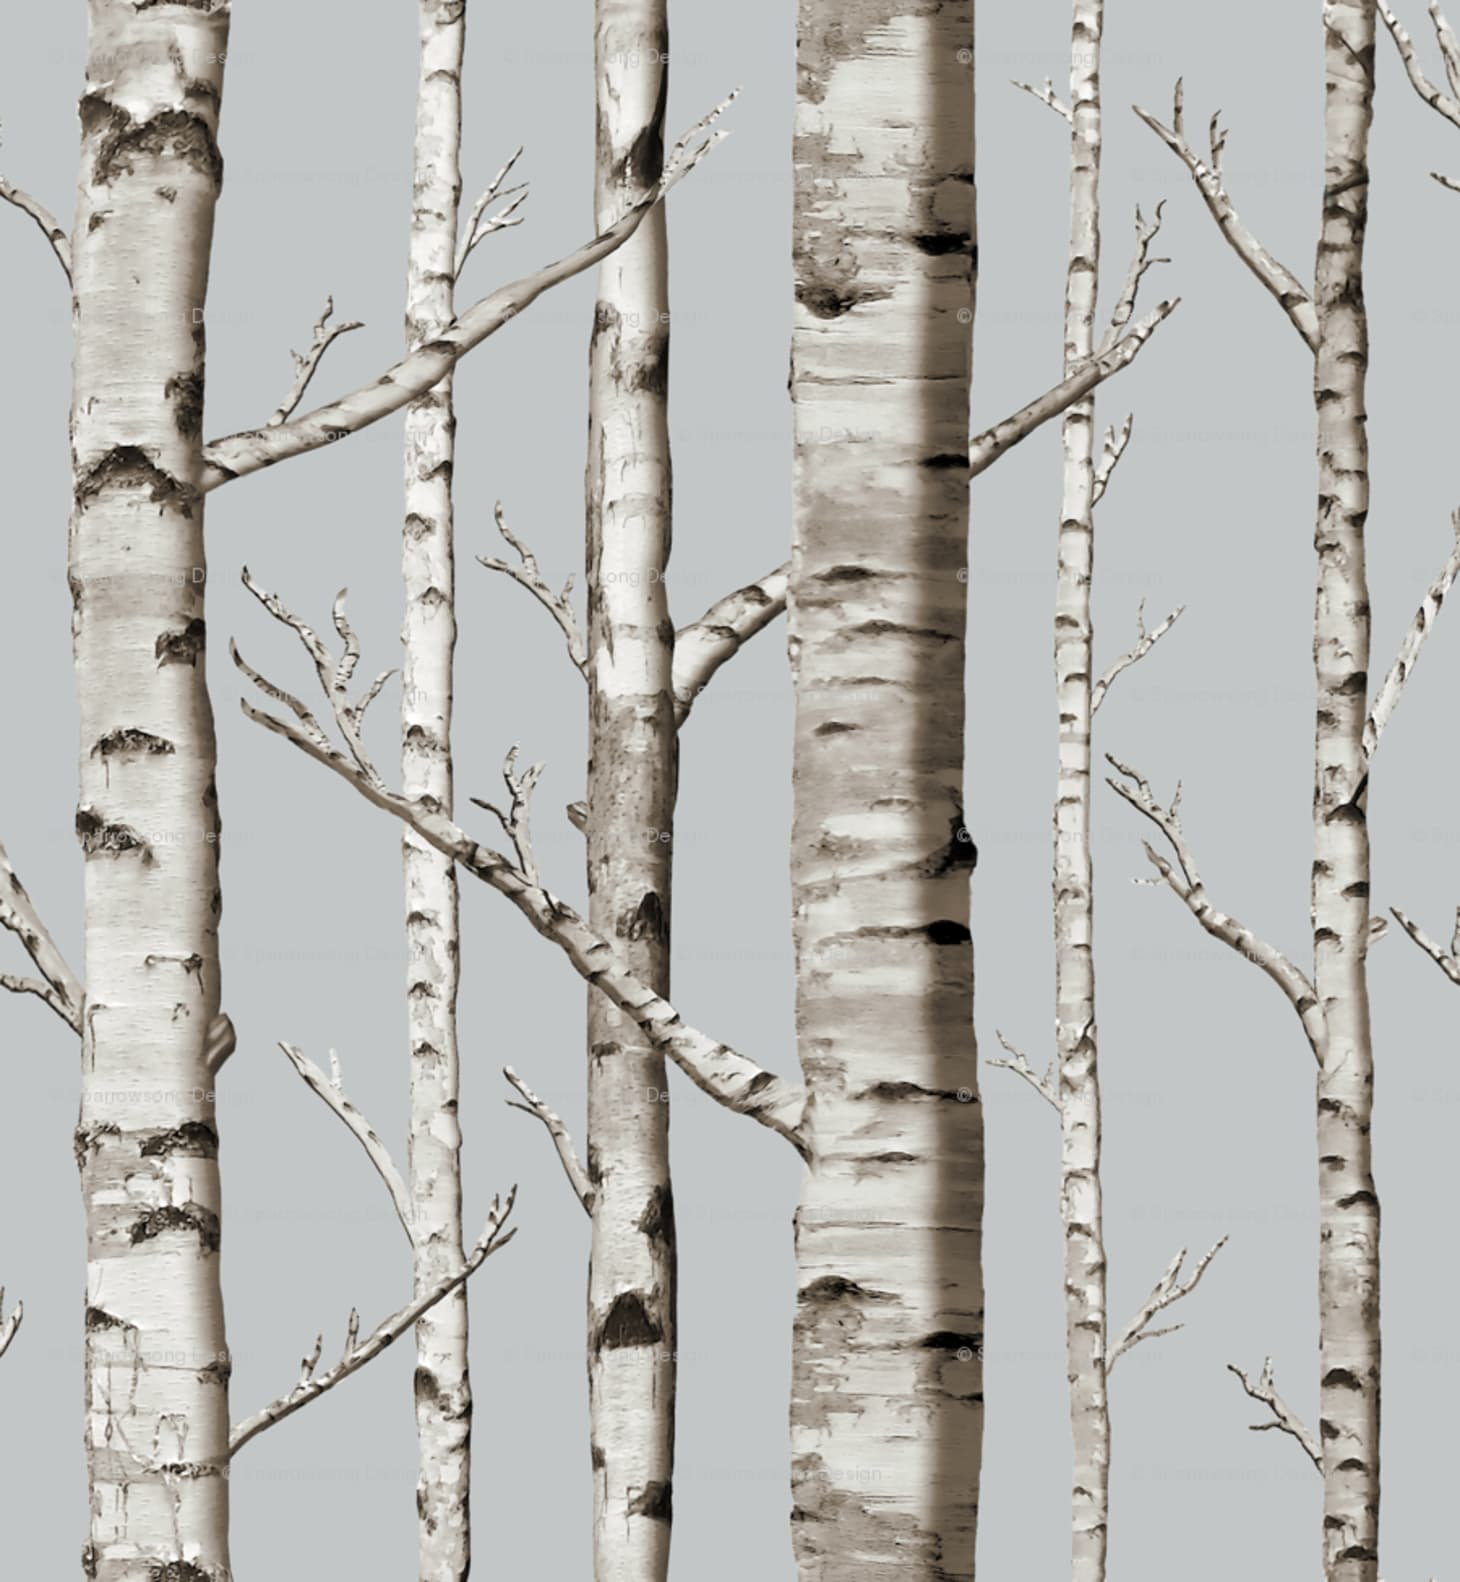 10 Excellent Sources for Buying Birch Tree Wallpaper ...